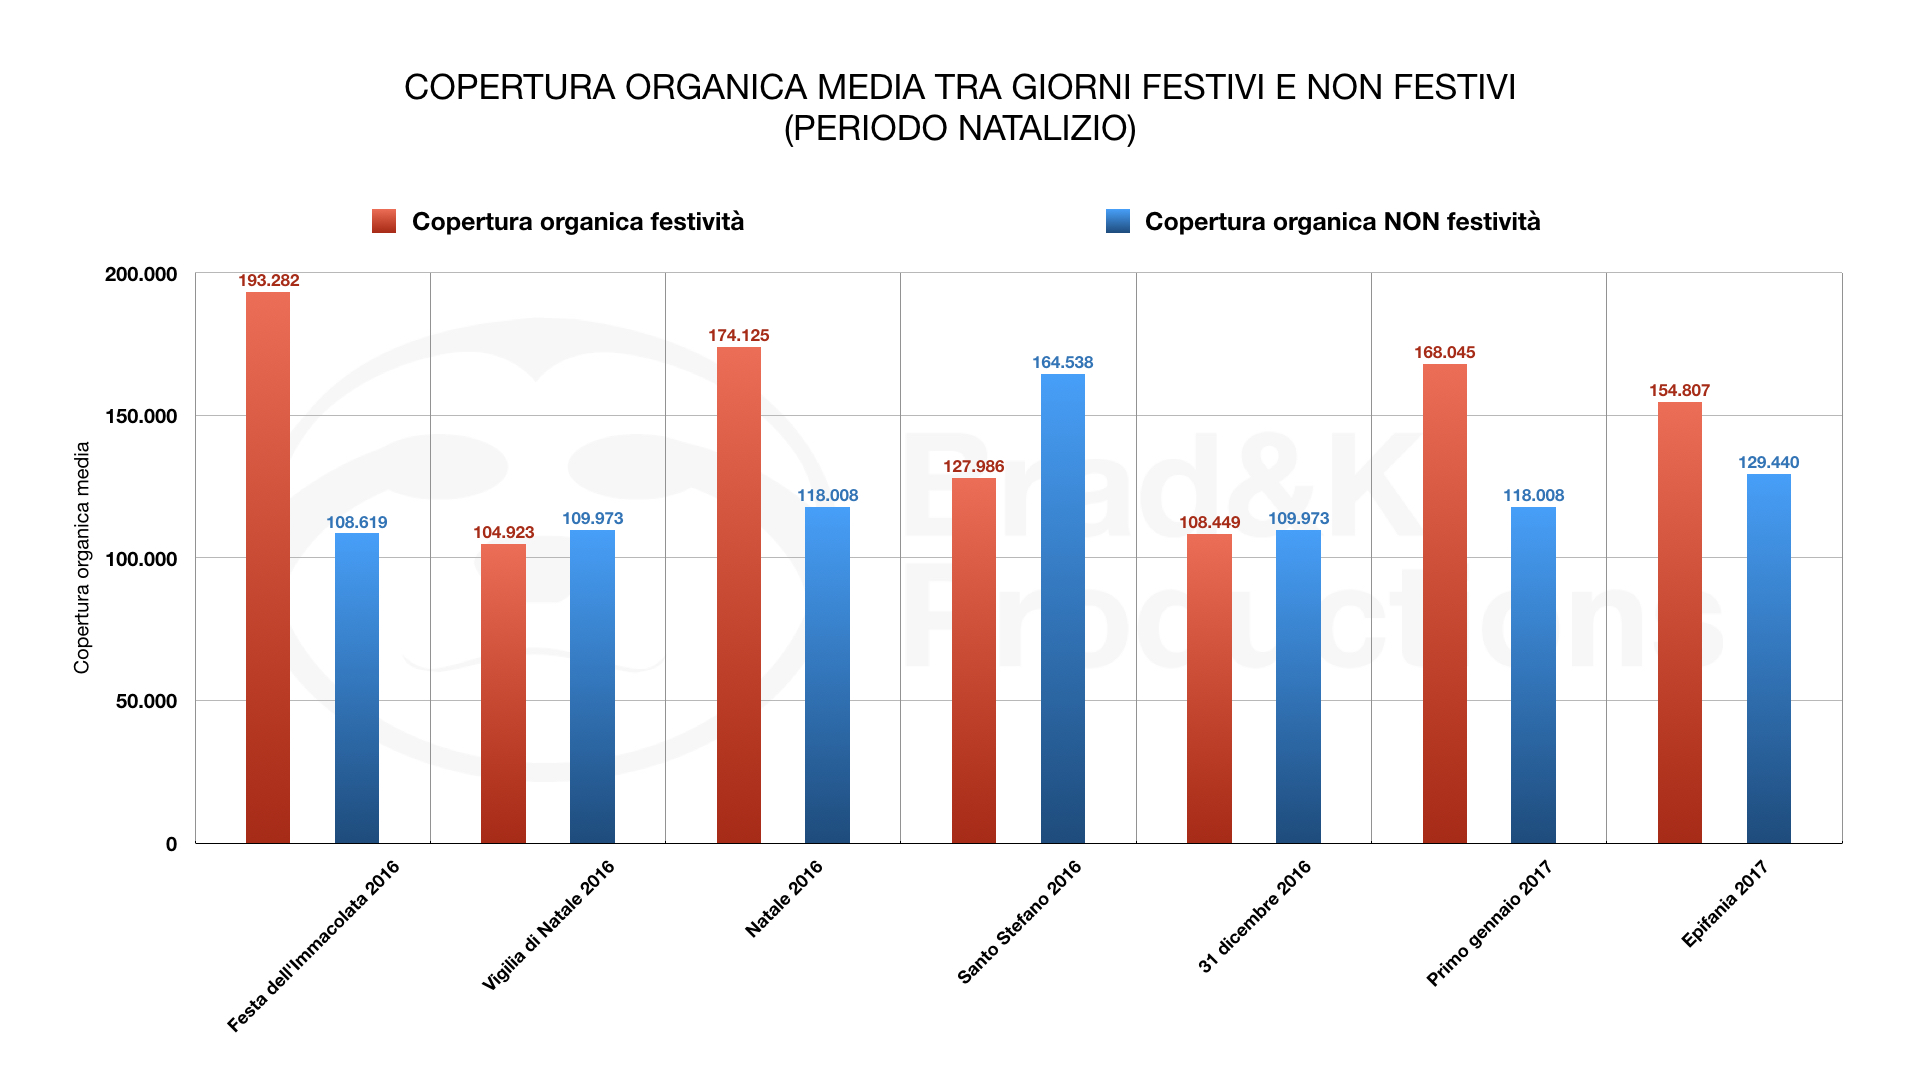 ORGANIC MEDIA COVERAGE BETWEEN PUBLIC HOLIDAYS AND PUBLIC HOLIDAYS(CHRISTMAS TIME)